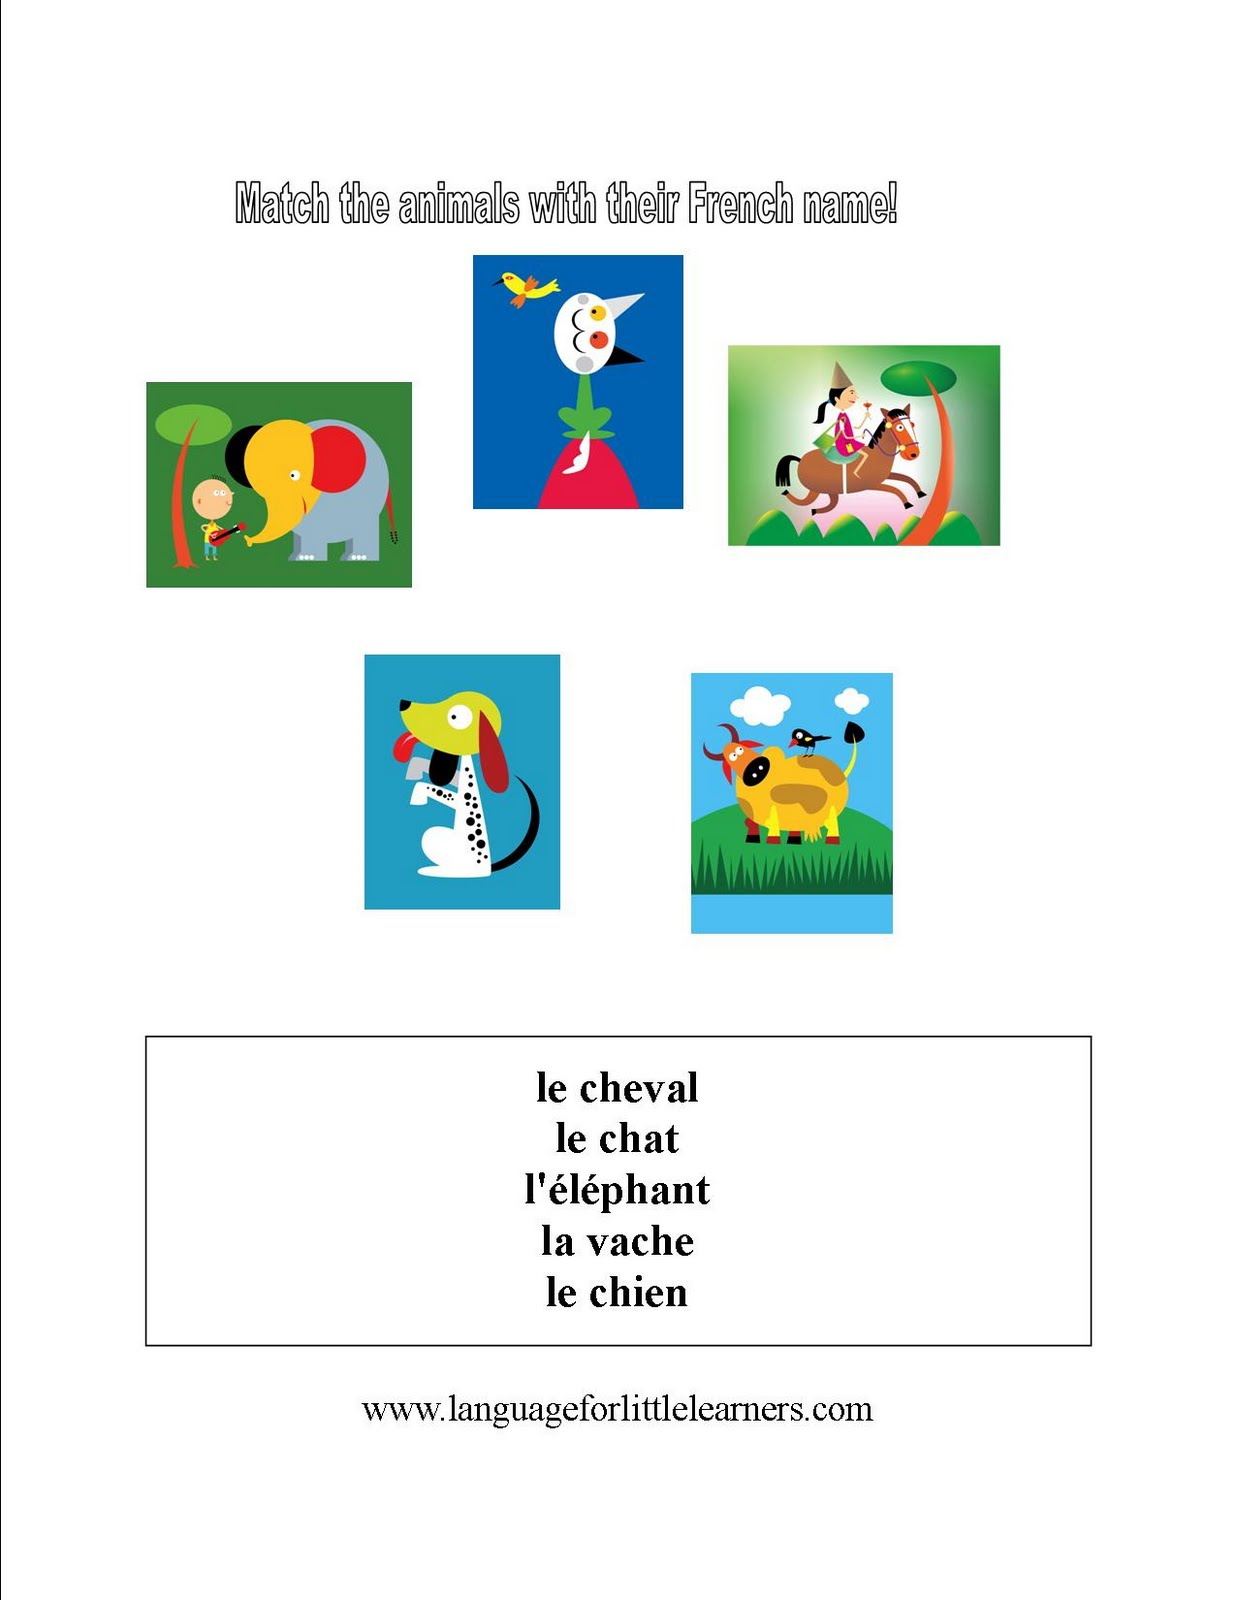 Language For Little Learners French Animal Worksheet